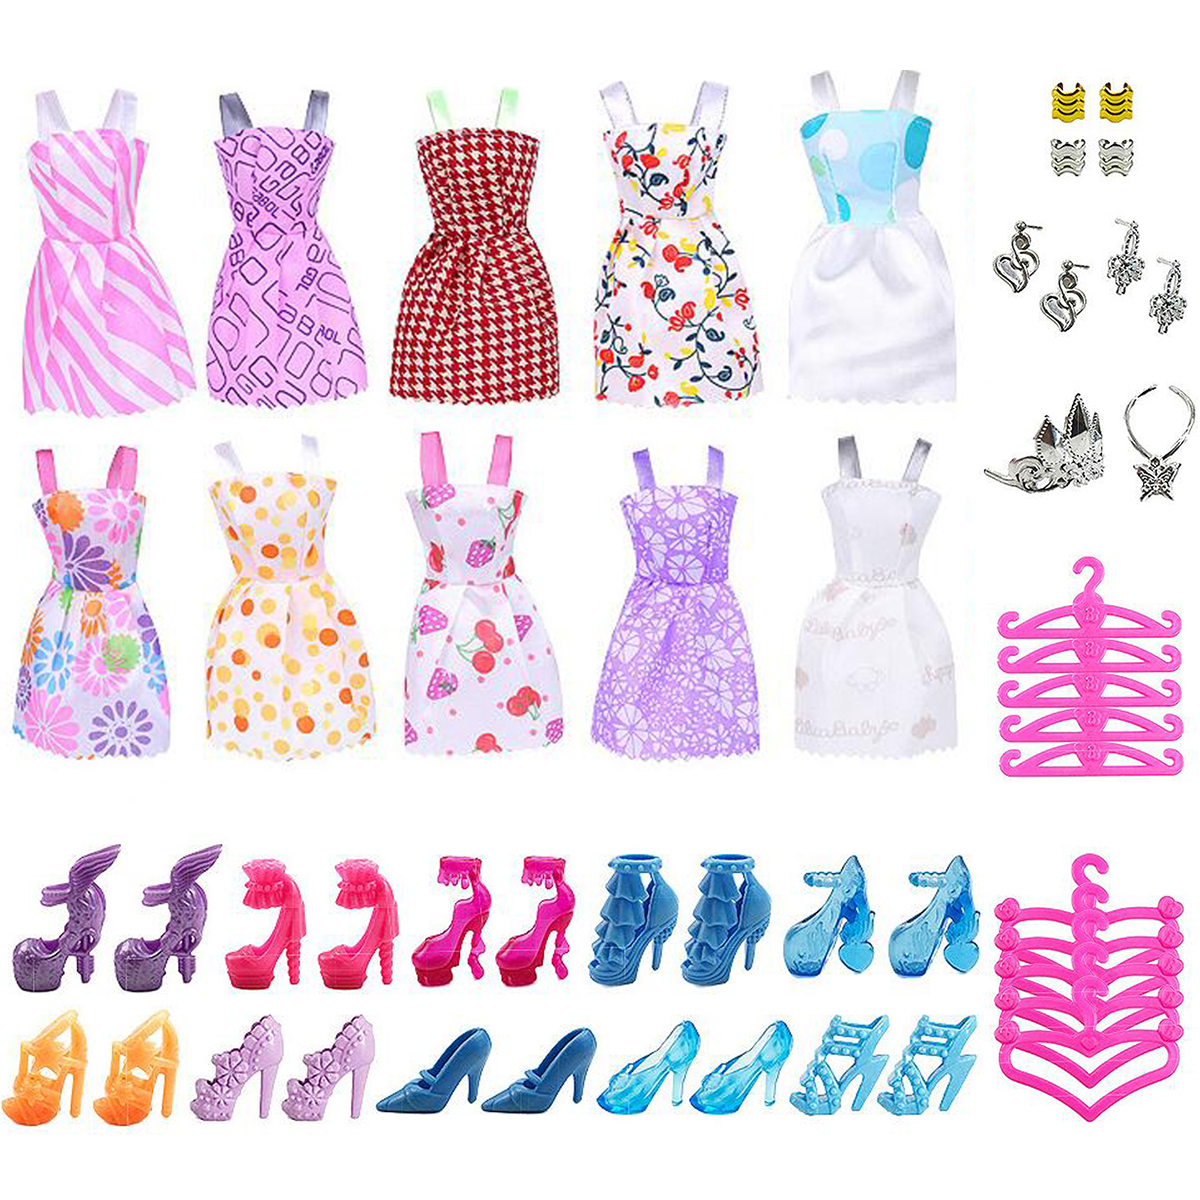 50Pc Dolls Dresses Clothes Skirt Shoes Accessories For Barbie Doll Cute Toy Gift